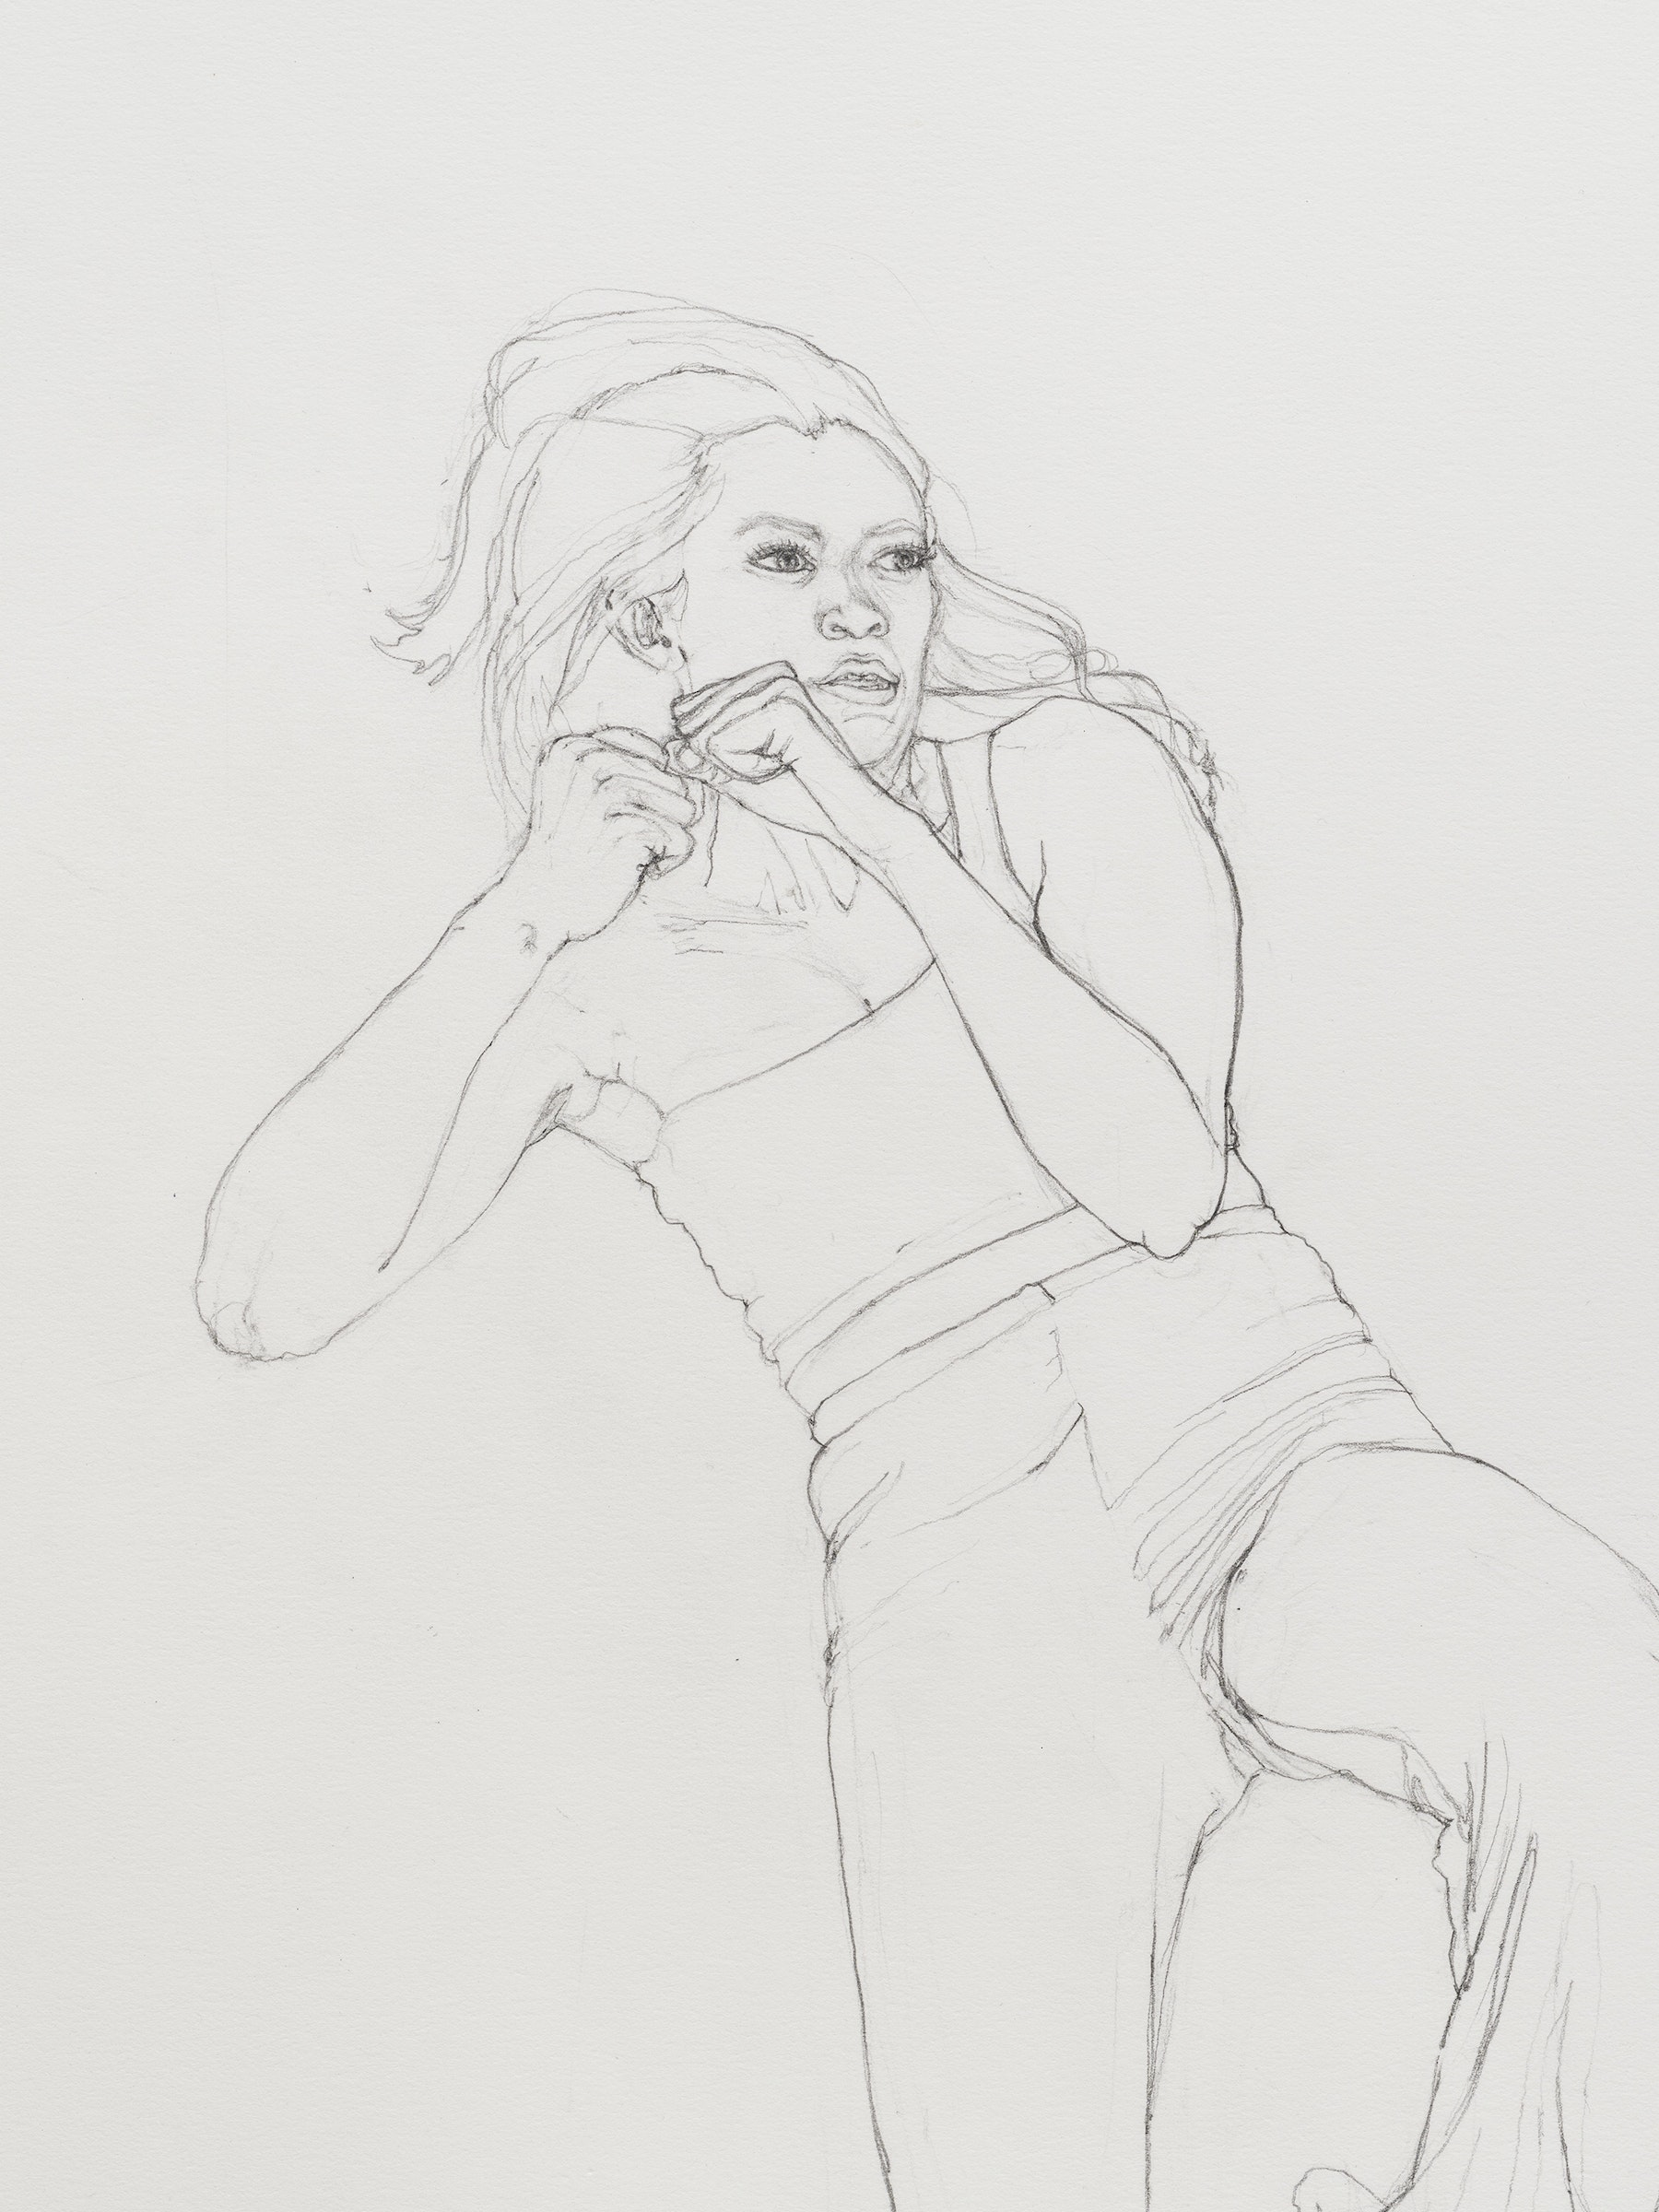 """Andrea Bowers """"Self-Defense Drawings - Study of Tiffany,"""" 2021 Graphite on paper 22 ³⁄₈"""" x 15"""" [HxW] (56.81 x 38.1 cm) paper size; 25 ¹⁄₄"""" x 17 ³⁄₄"""" x 1 ¹⁄₂"""" [HxWxD] (64.13 x 45.08 x 3.81 cm) framed Inventory #BOW591 Courtesy of the artist and Vielmetter Los Angeles Photo credit: Jeff McLane"""